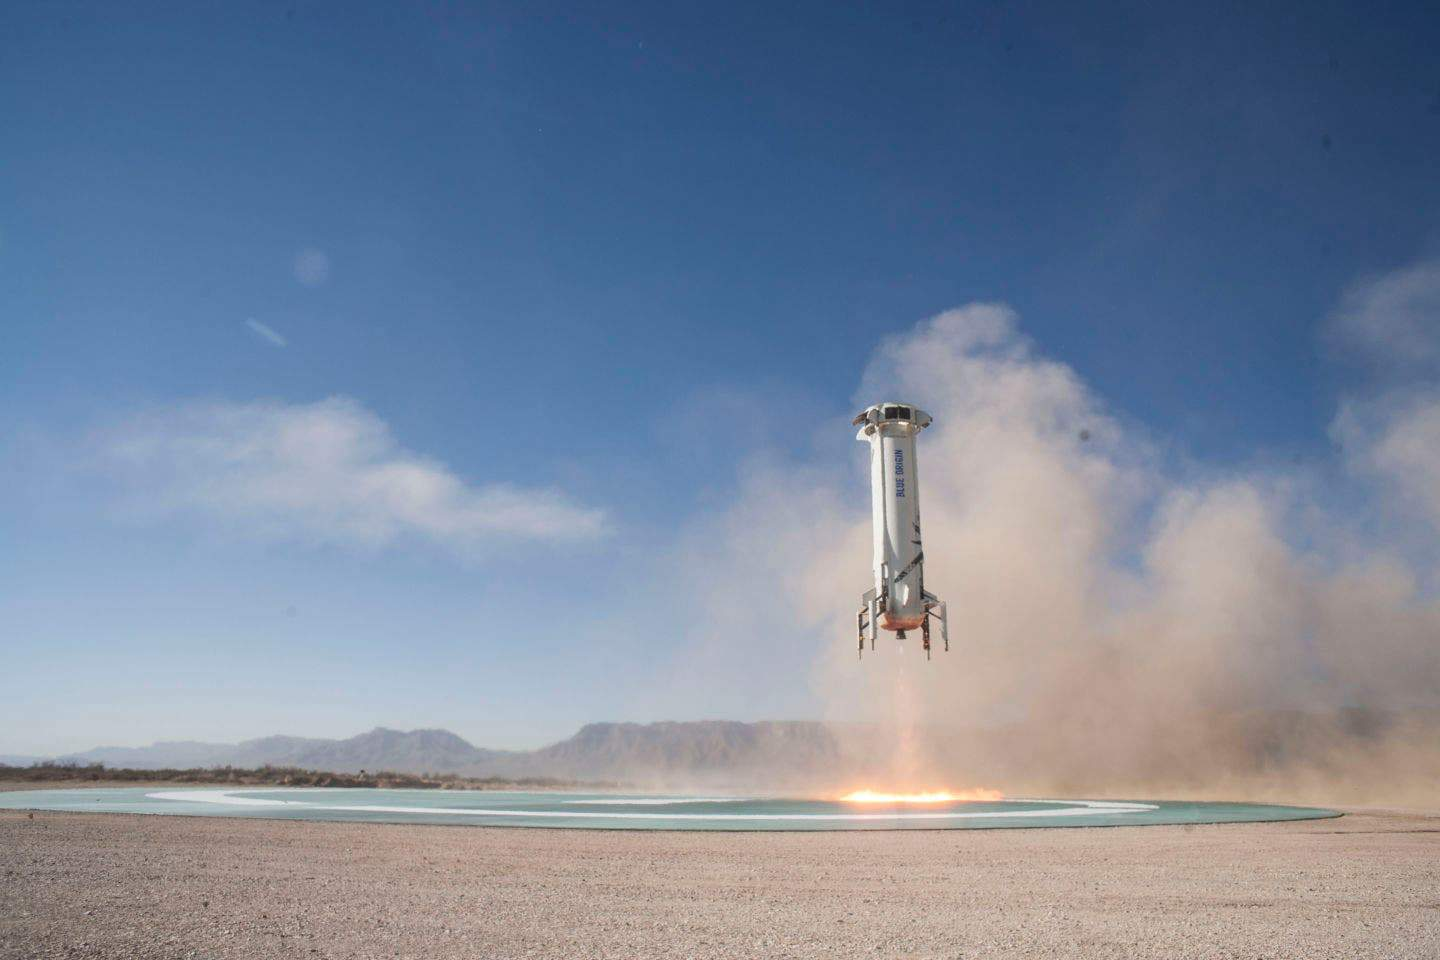 The New Shepard booster made a controlled landing at just 6.75mph. Credit Blue Origin